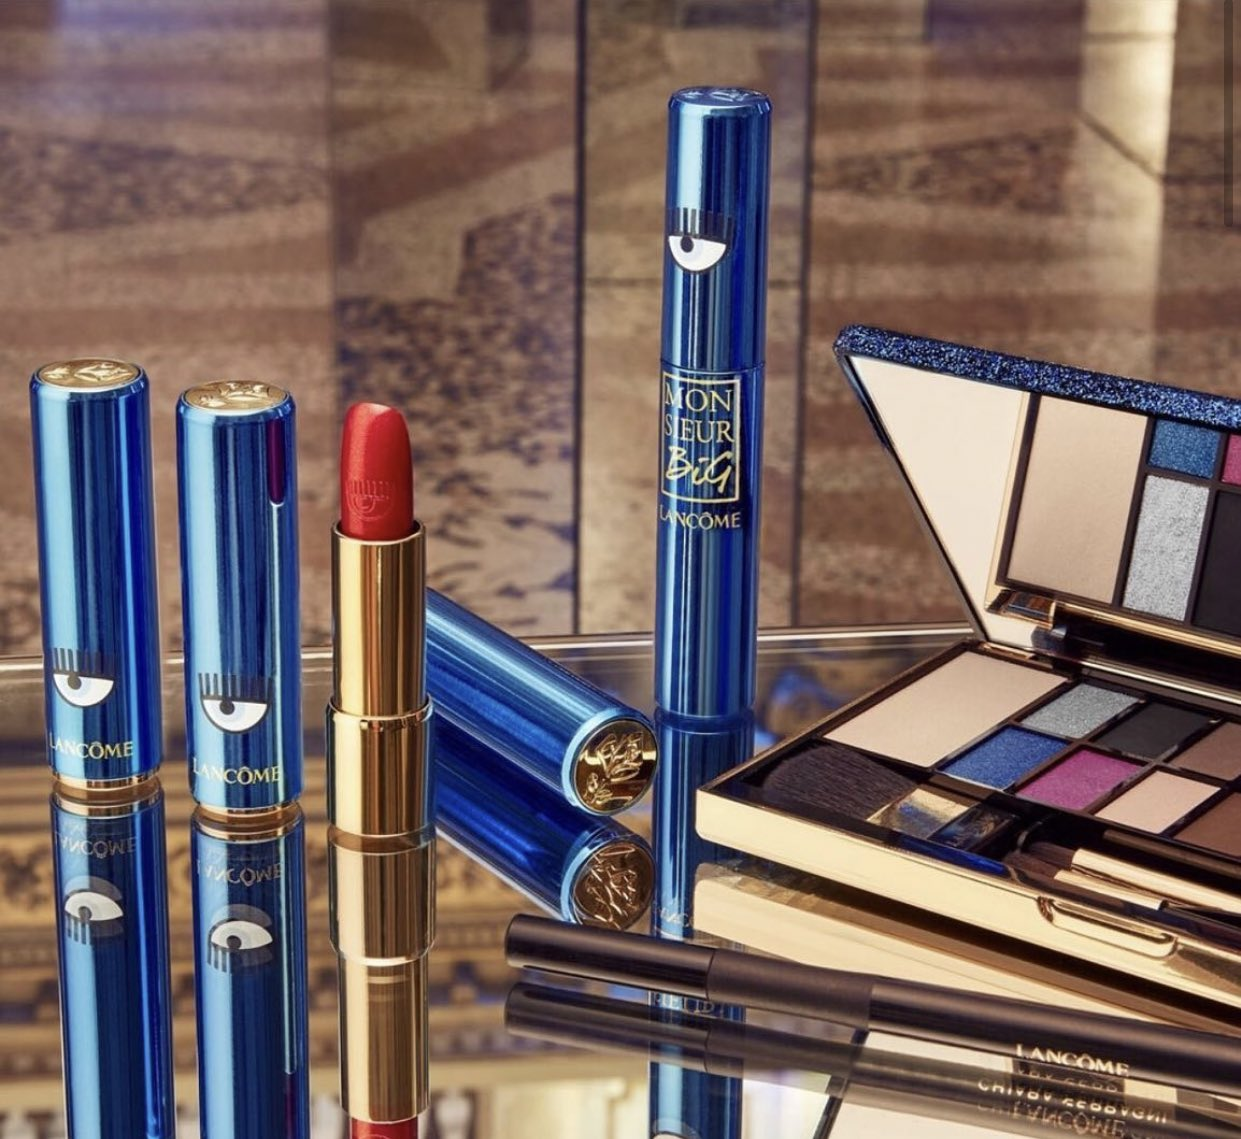 1 30 - Lancome X ChiaraFerragni the New Collection